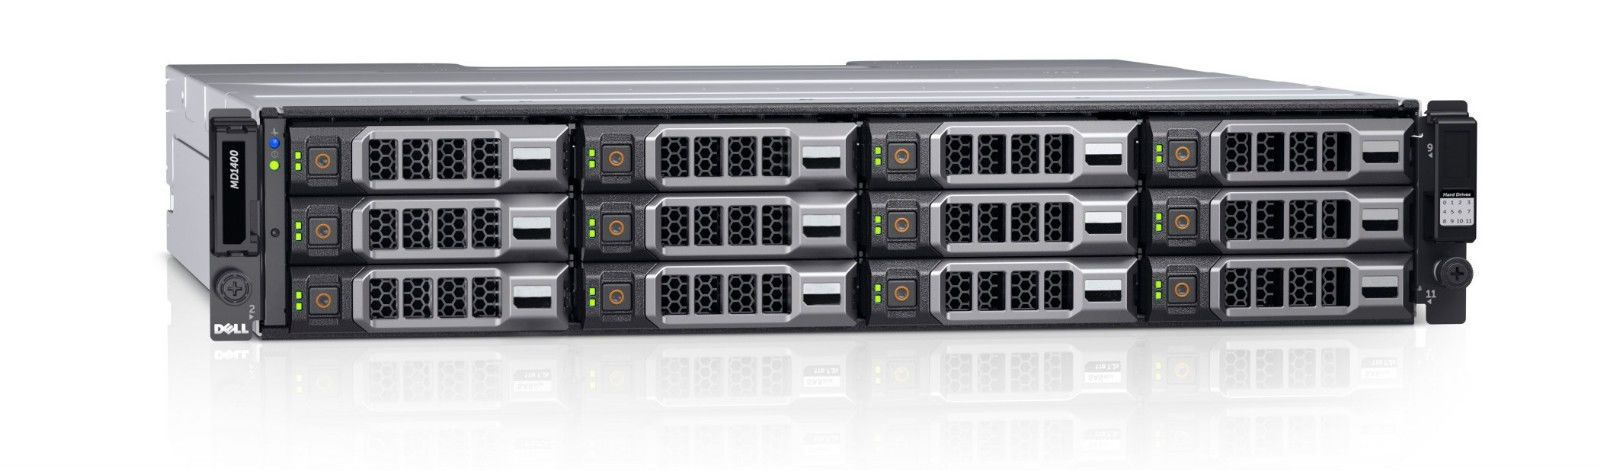 MÁY CHỦ SERVER DELL STORAGE POWERVAULT MD1400 DAS Storage